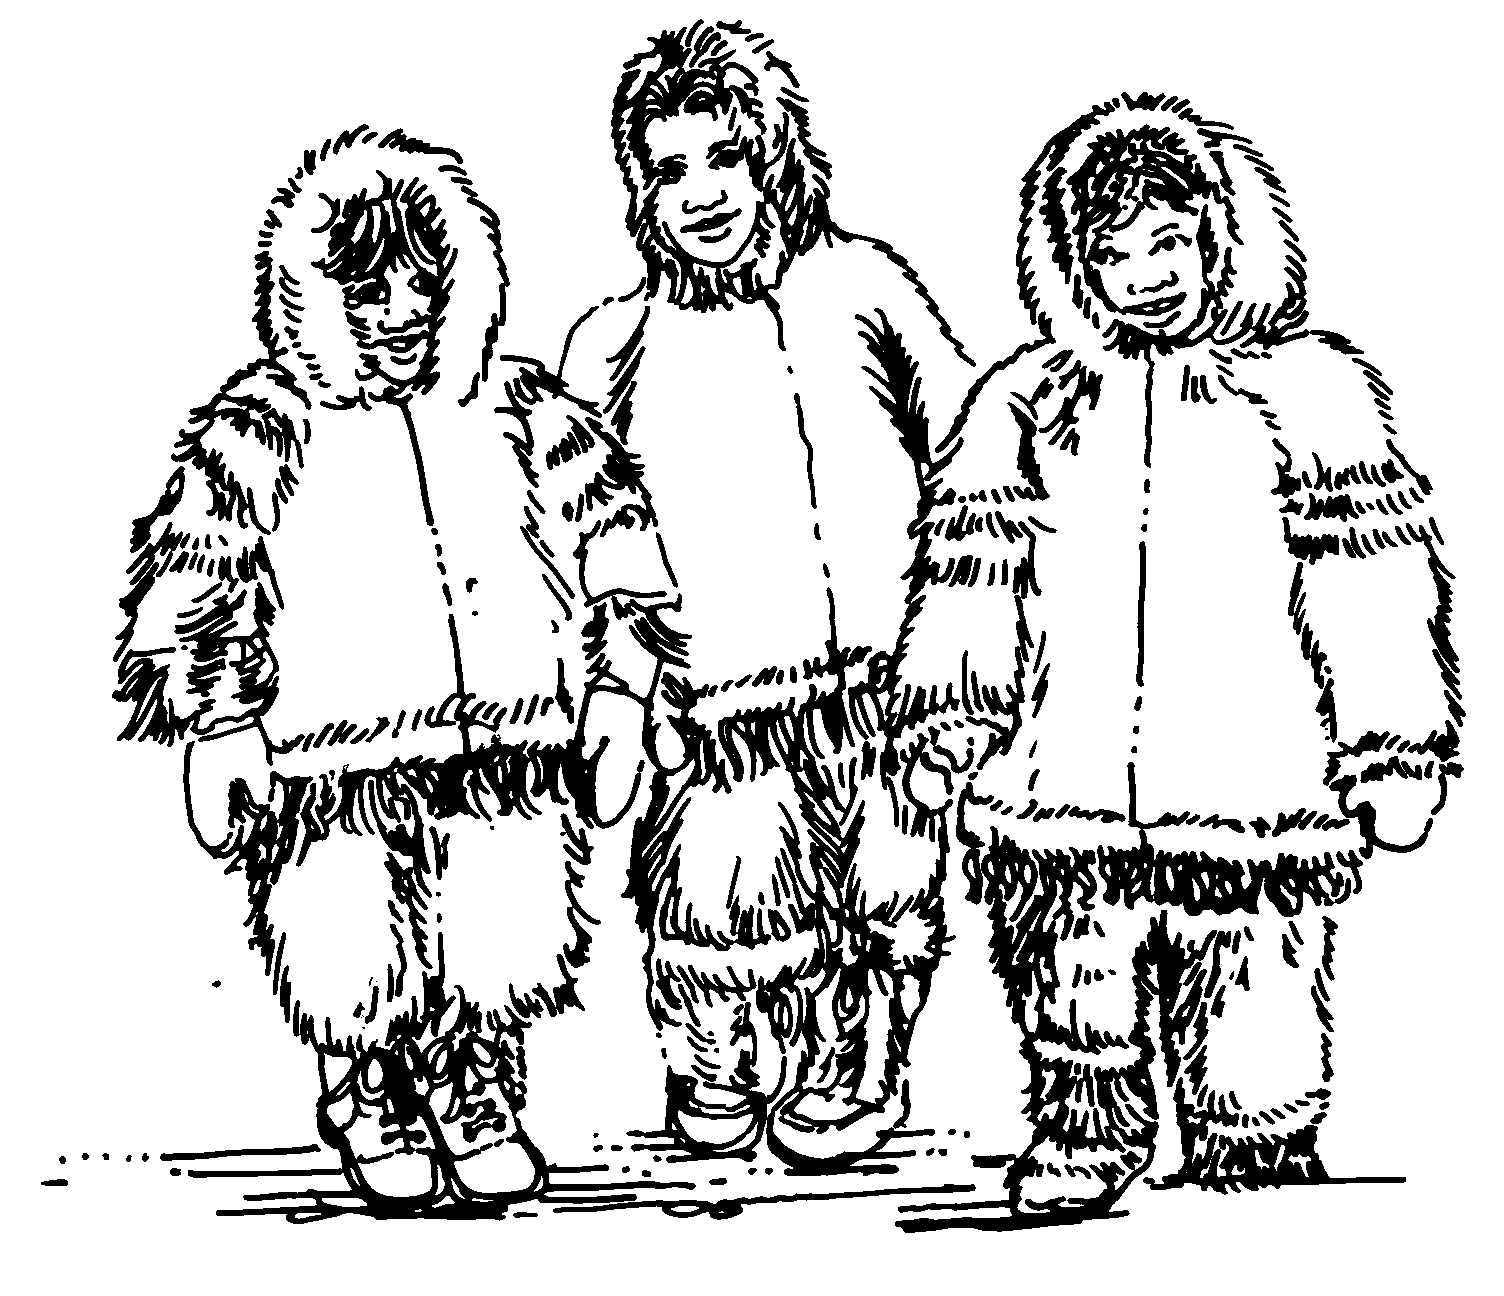 Arctic People Png - Animal life at the south pole (antarctica): By OpenStax   Jobilize.com